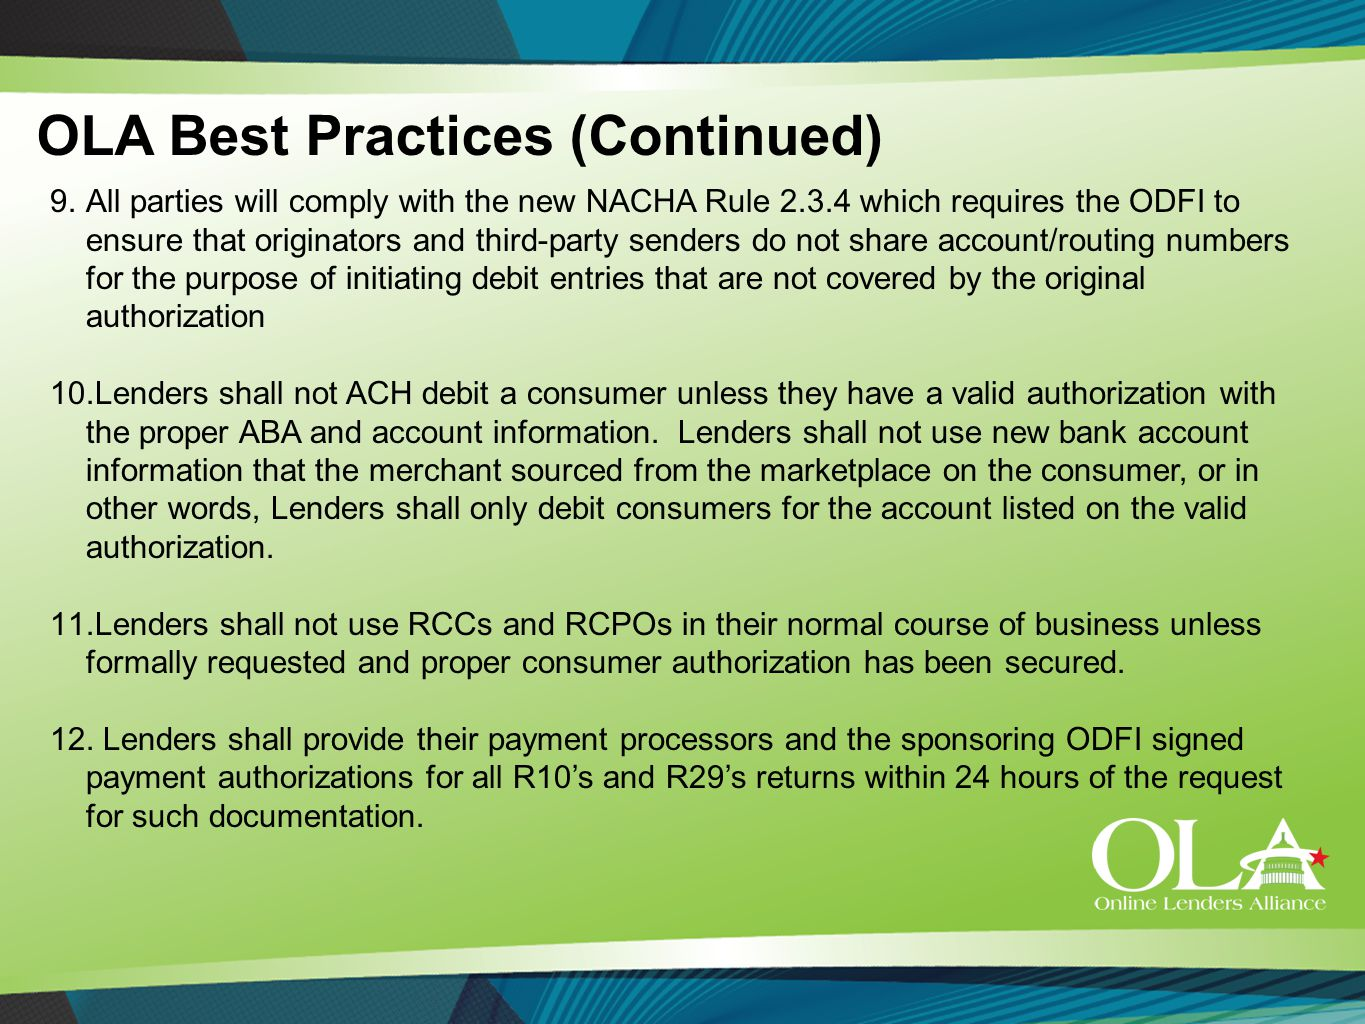 9. All parties will comply with the new NACHA Rule 2.3.4 which requires the ODFI to ensure that originators and third-party senders do not share accou